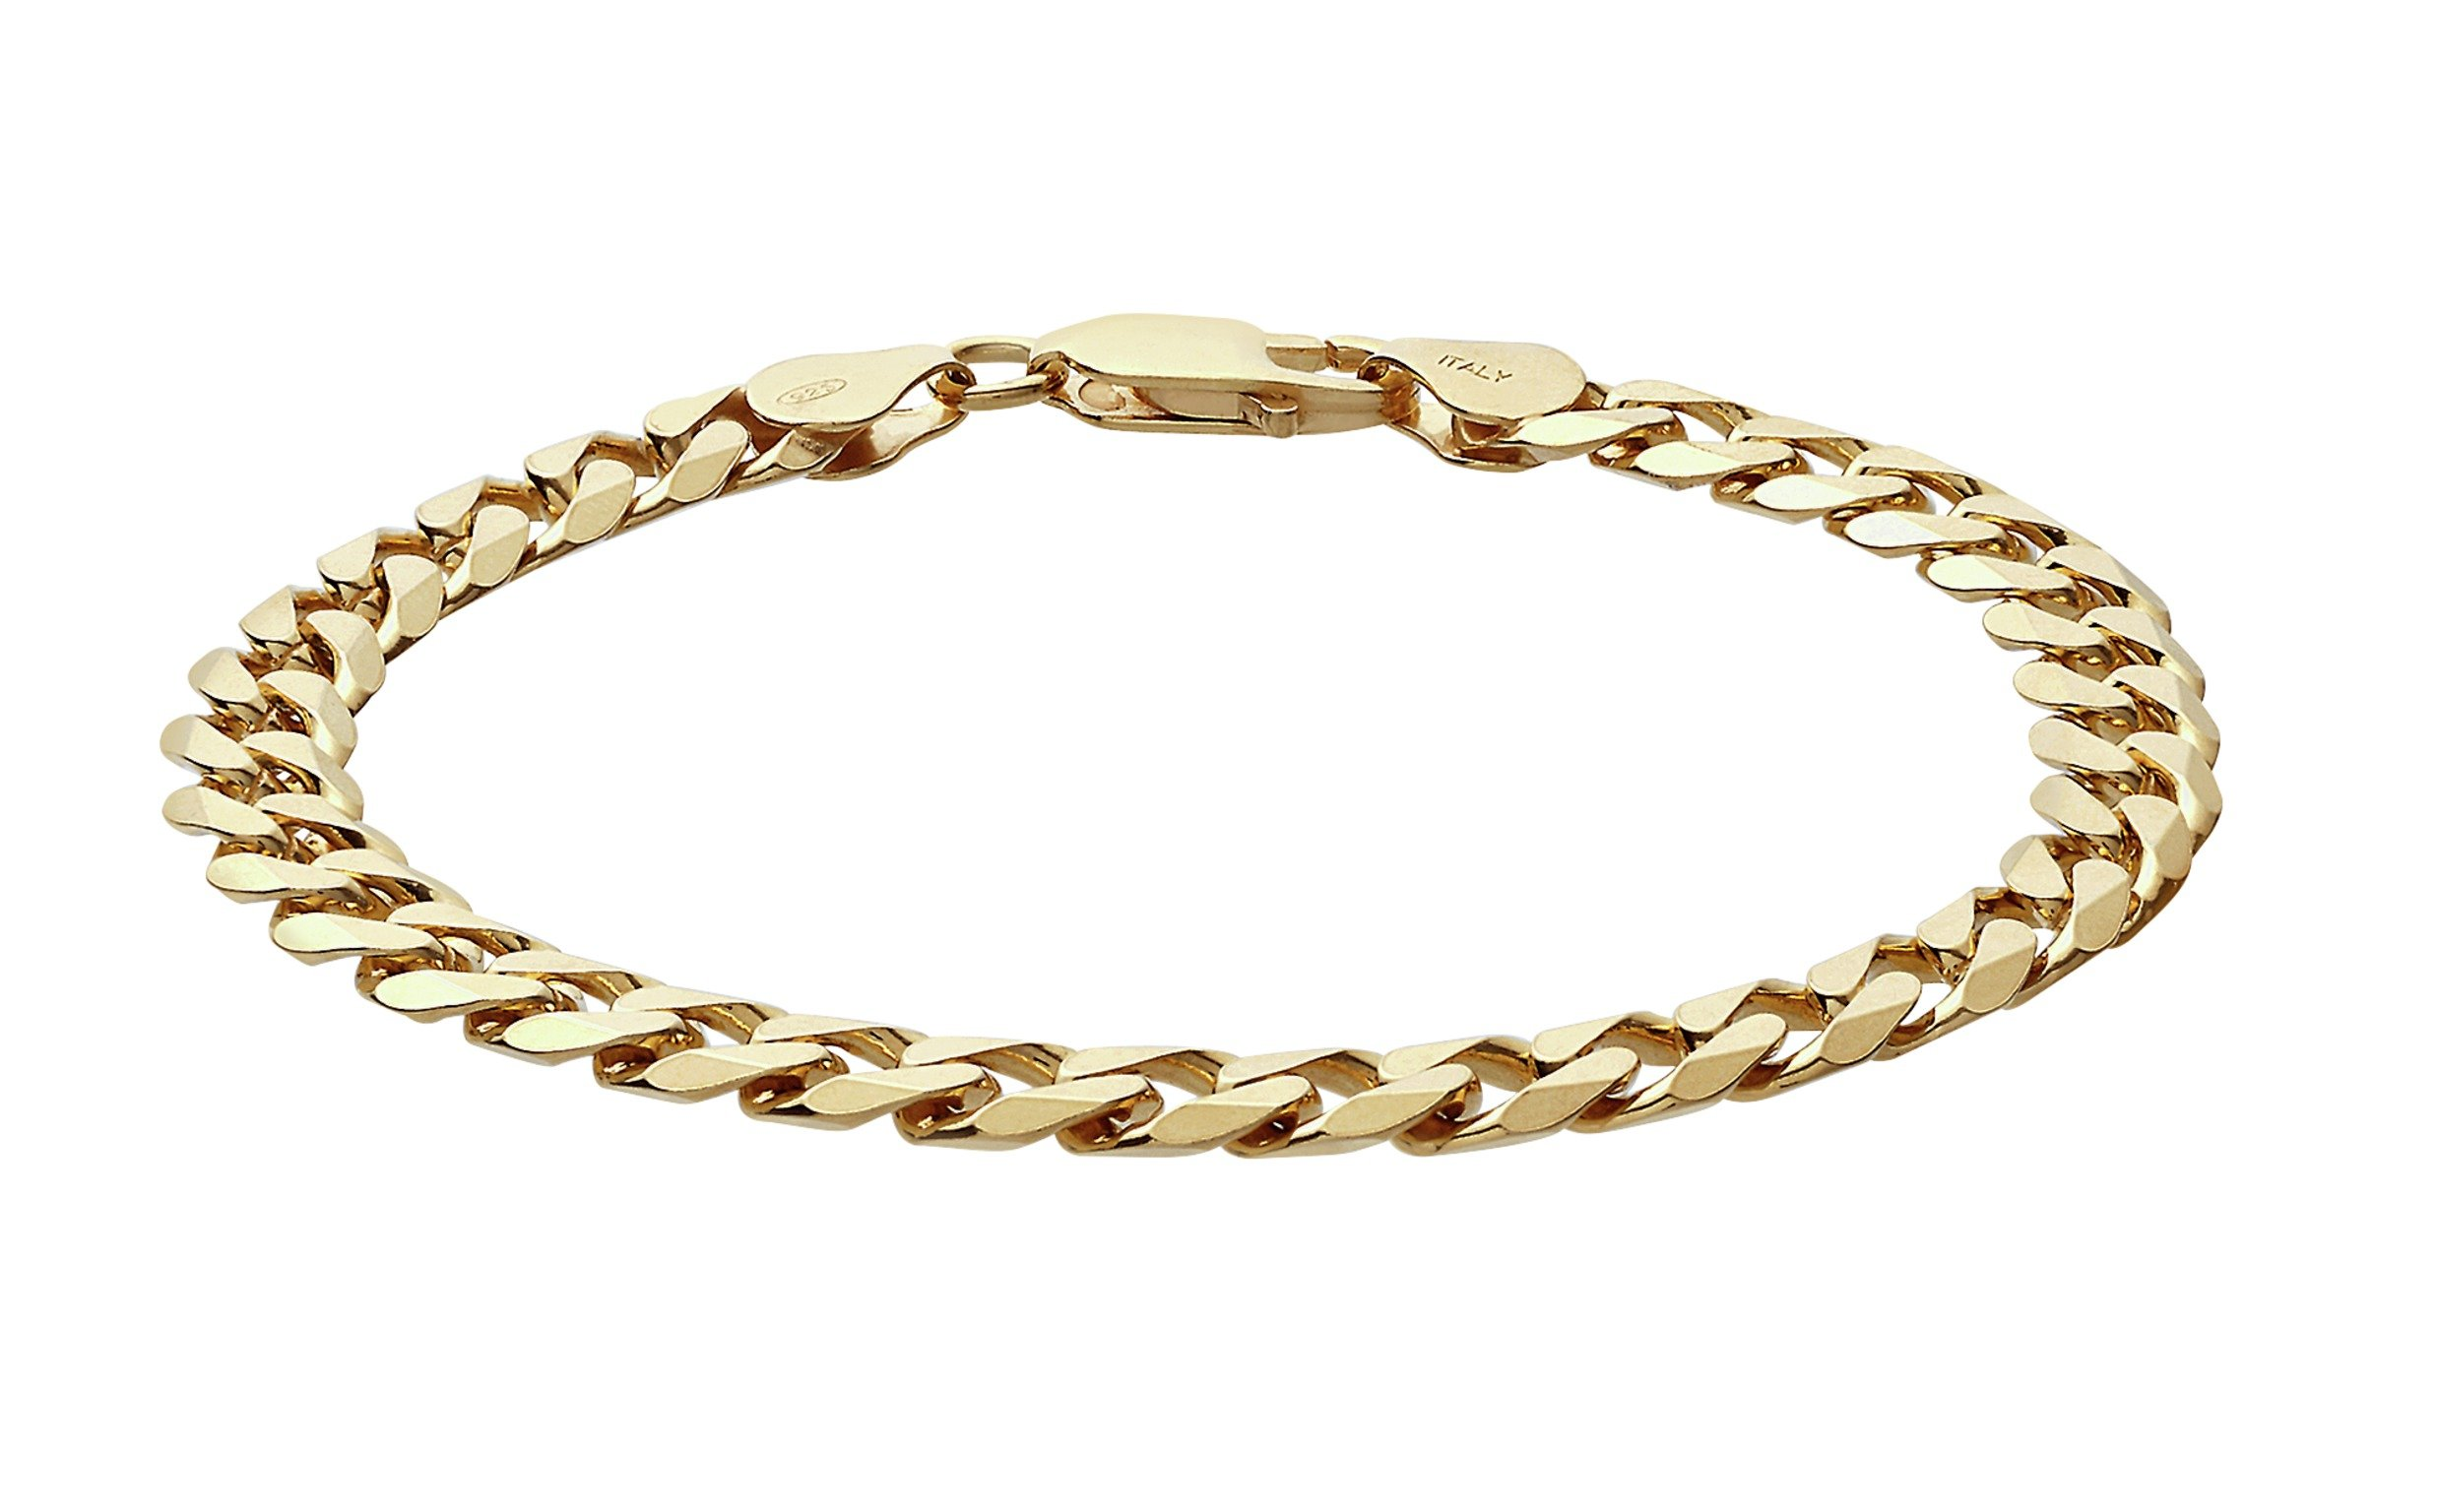 Sale On 9ct Gold Plated Sterling Silver Curb